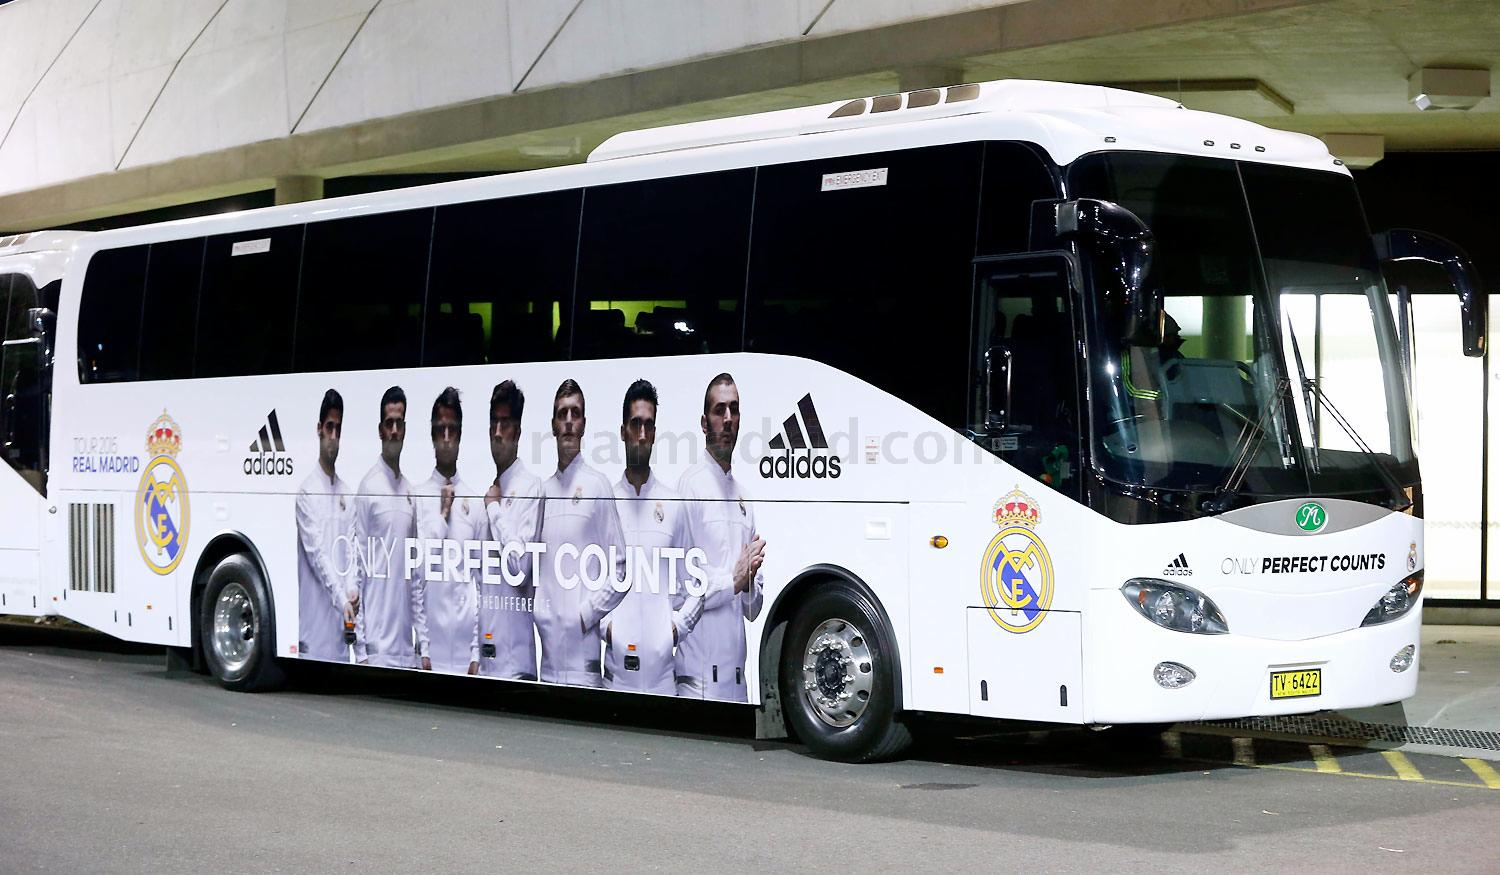 Real Madrid - Autobús del Tour 2015 del Real Madrid - 21-07-2015